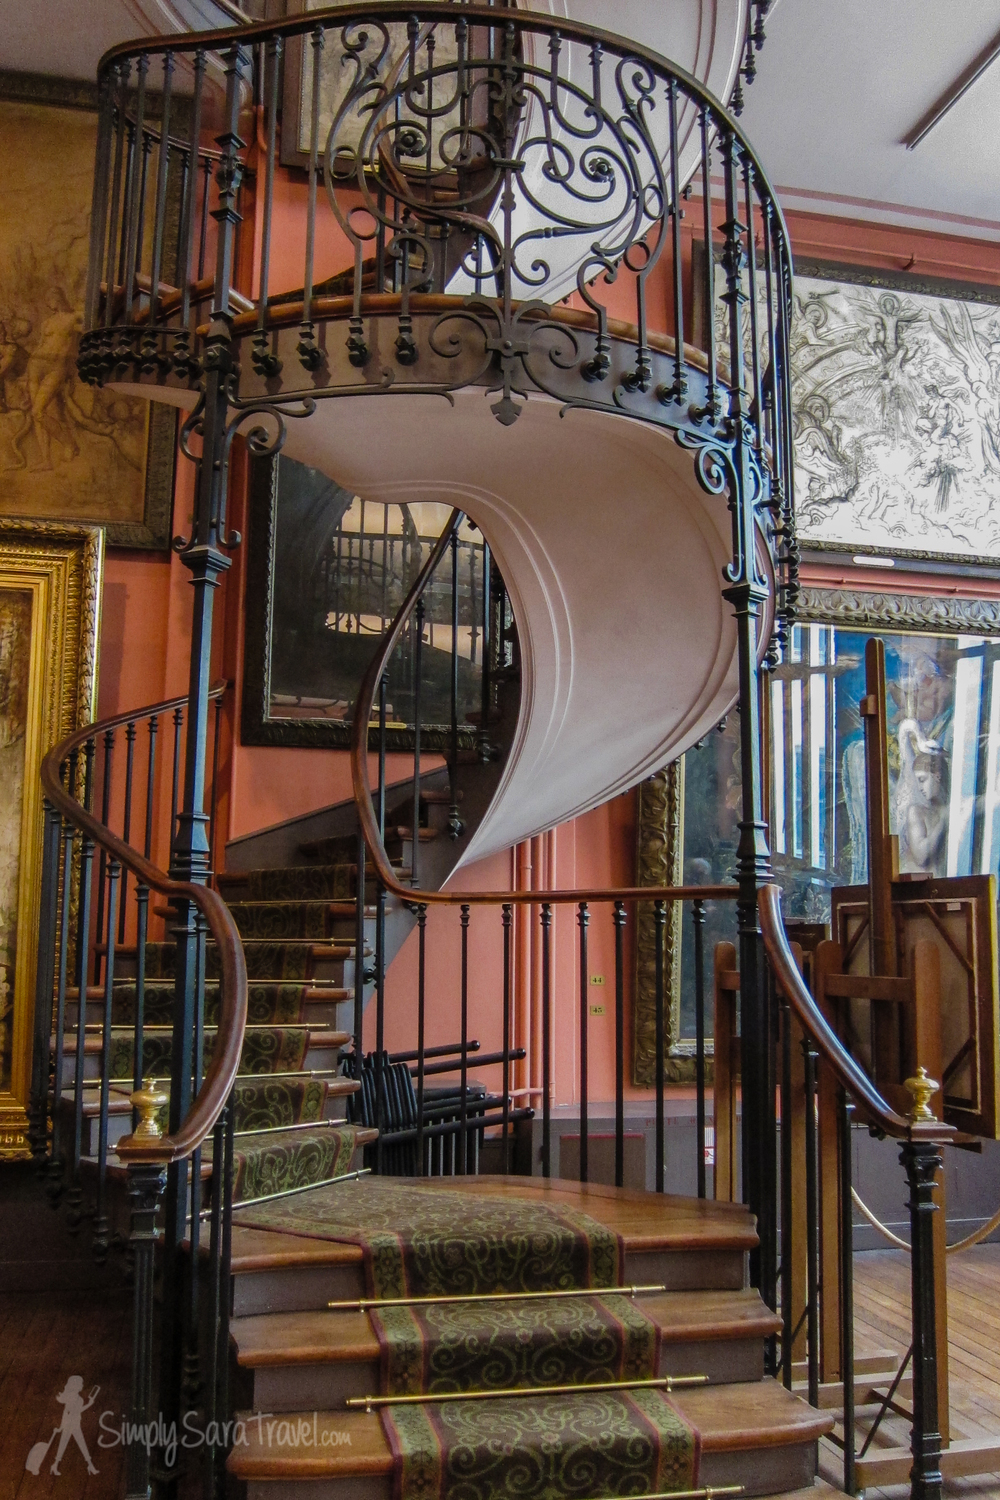 Staircase at Musée Gustave Moreau